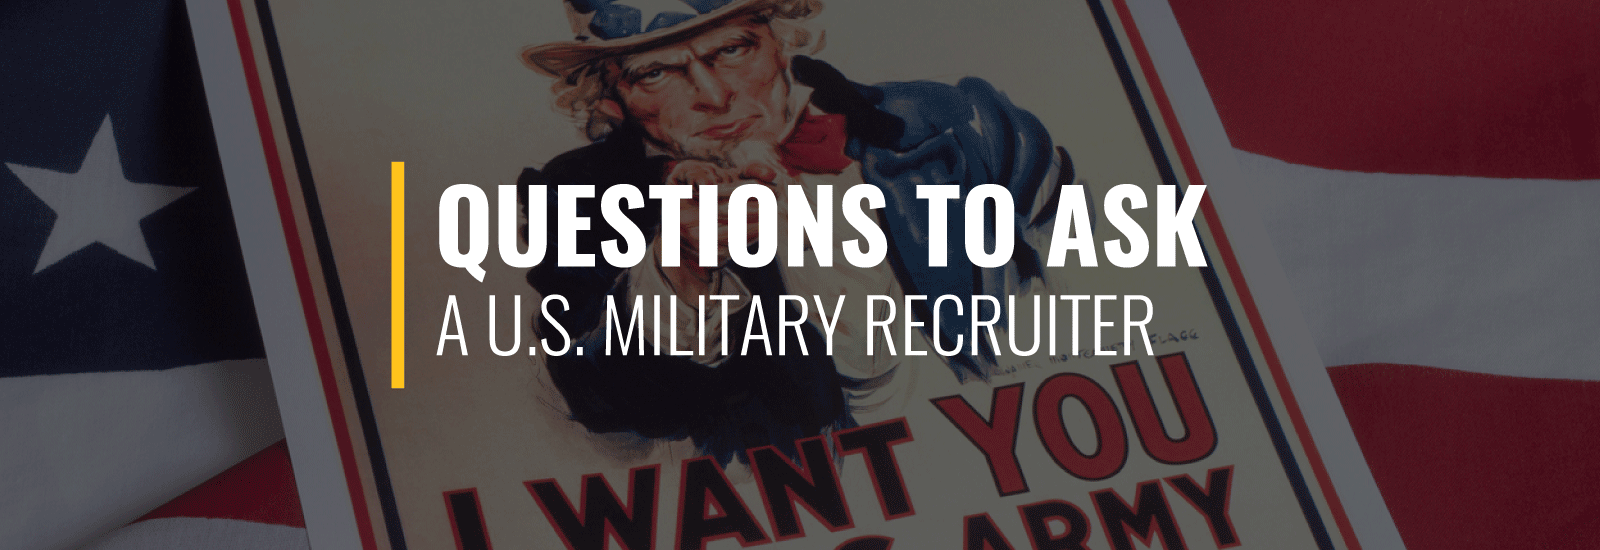 uestions to Ask a U.S. Military Recruiter